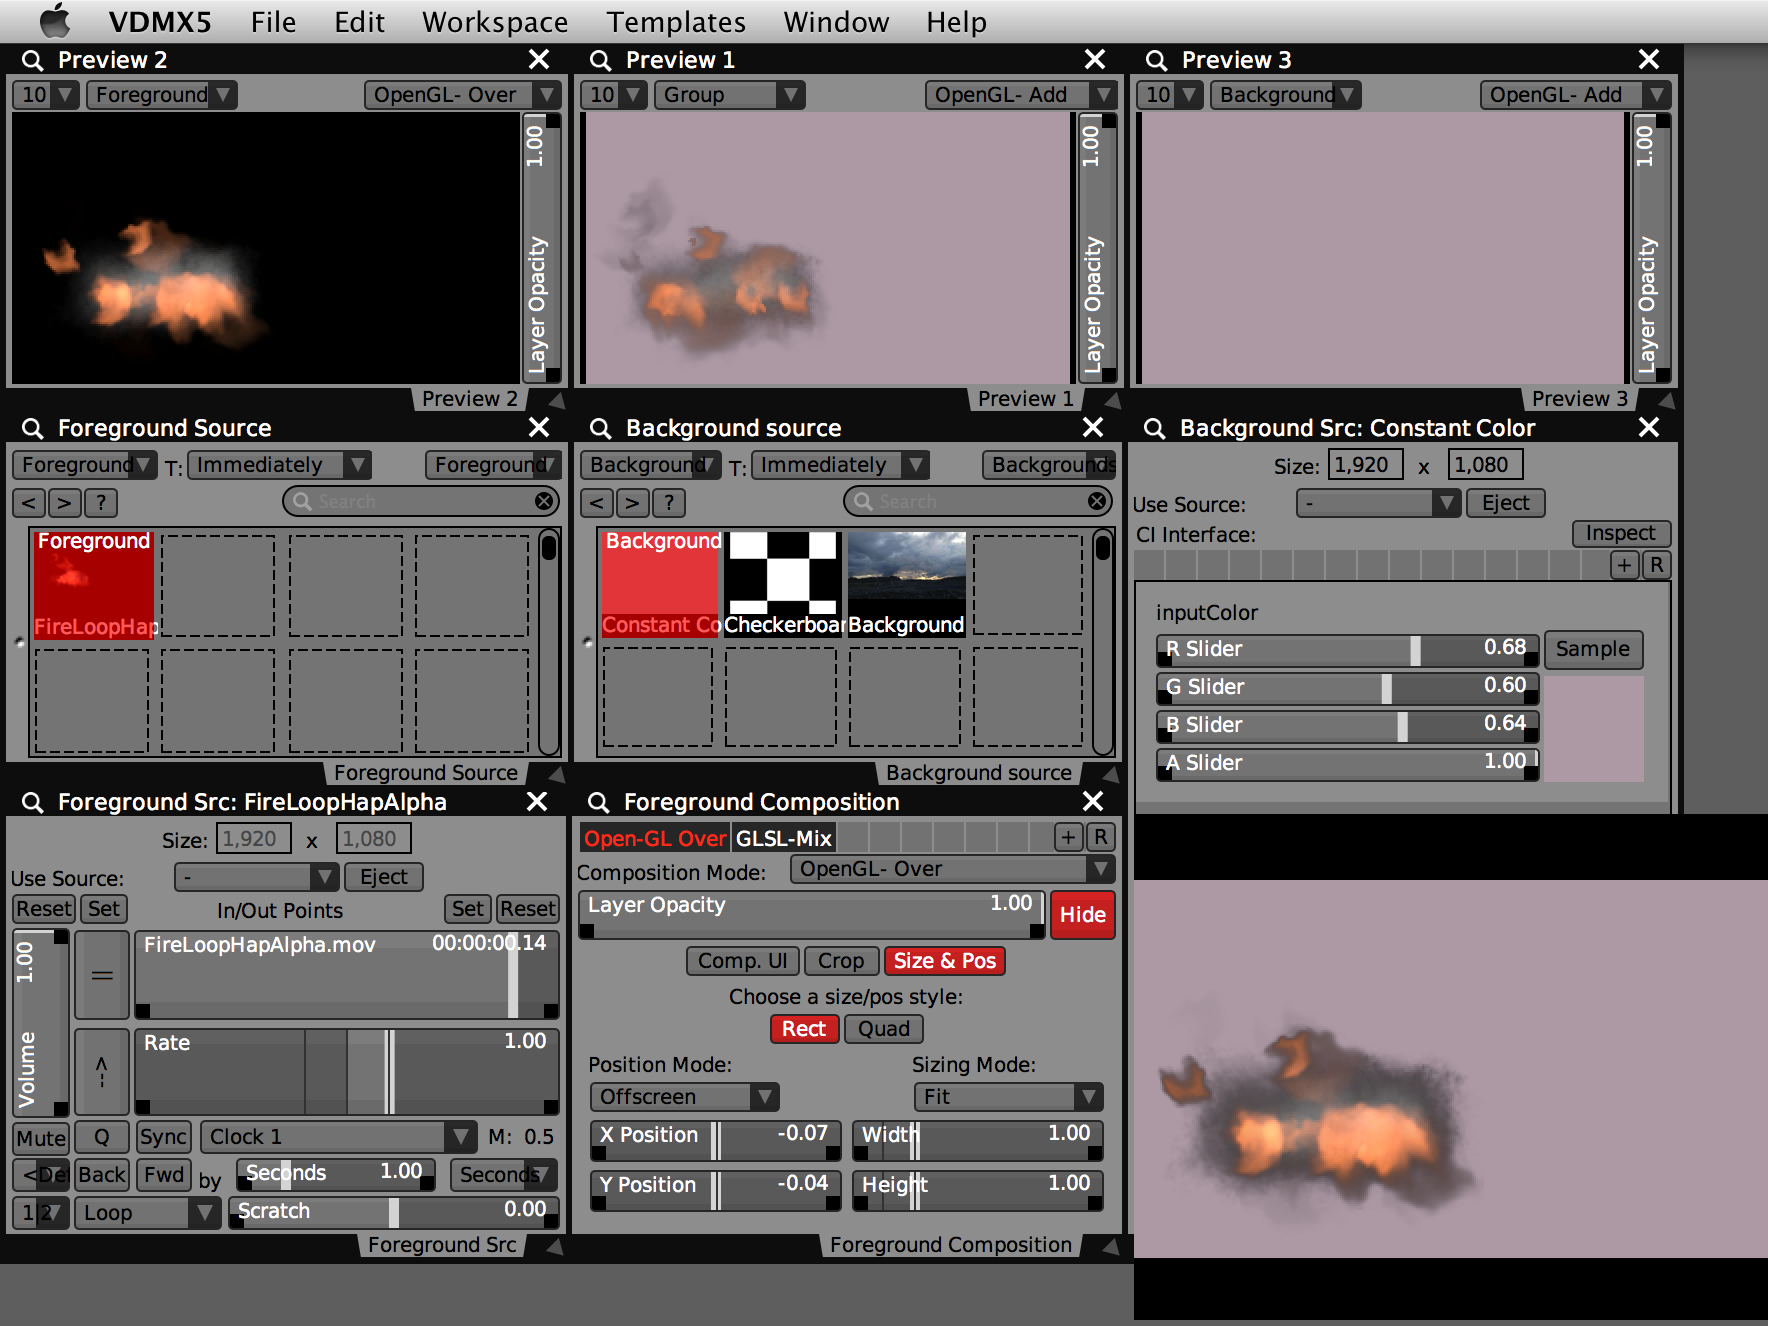 VDMX project with foreground and background layers.